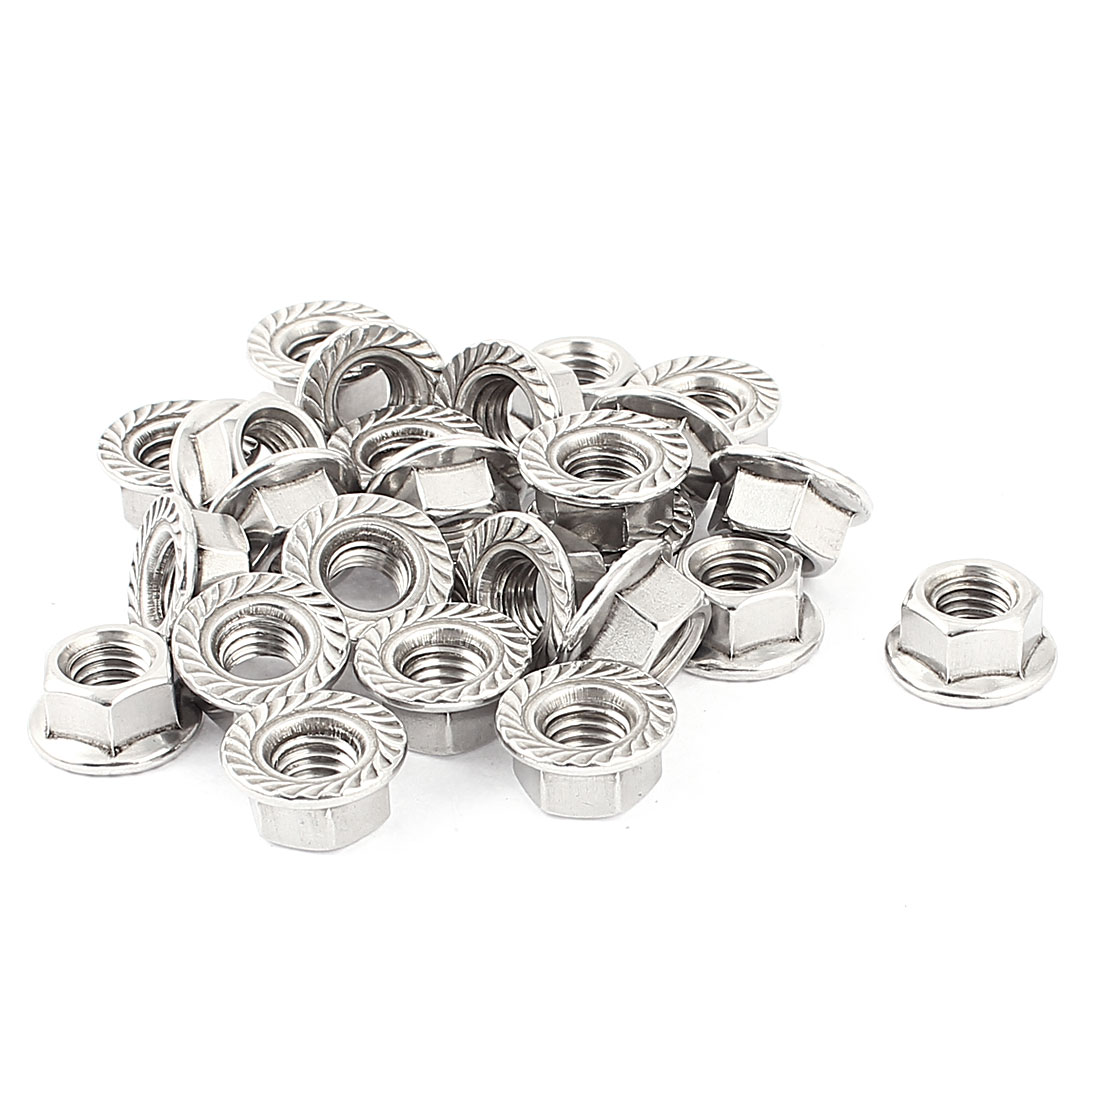 25 Pcs 10mm Height 1/8 BSP Thread Stainless Steel Serrated Hex Flange Lock Nuts